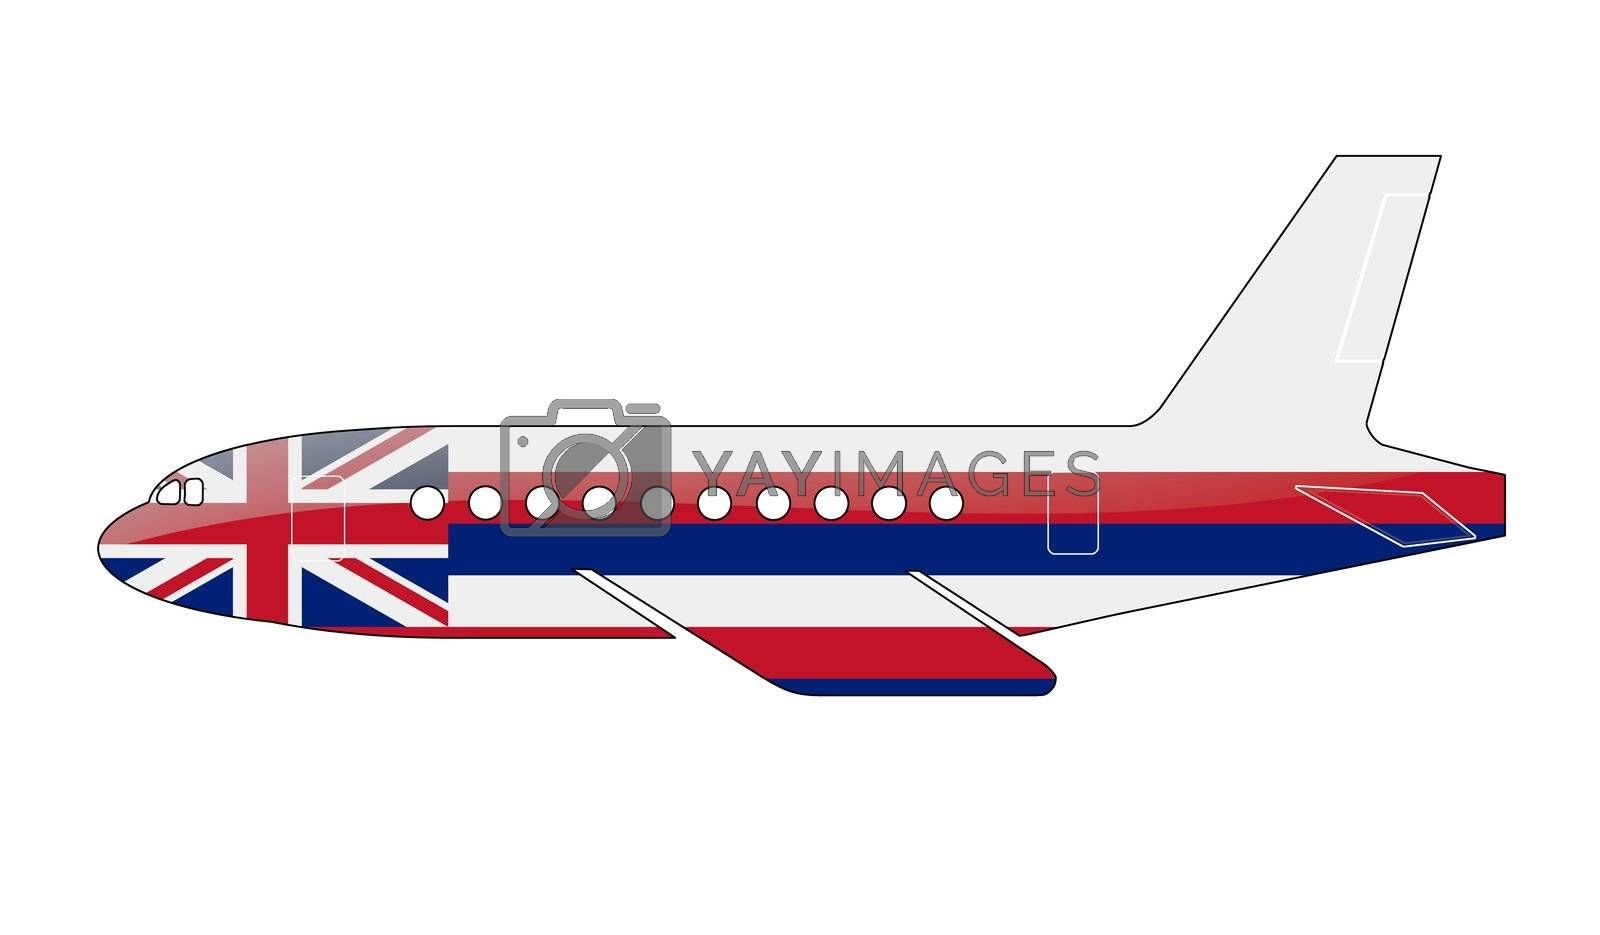 The Hawaii flag painted on the silhouette of a aircraft. glossy illustration